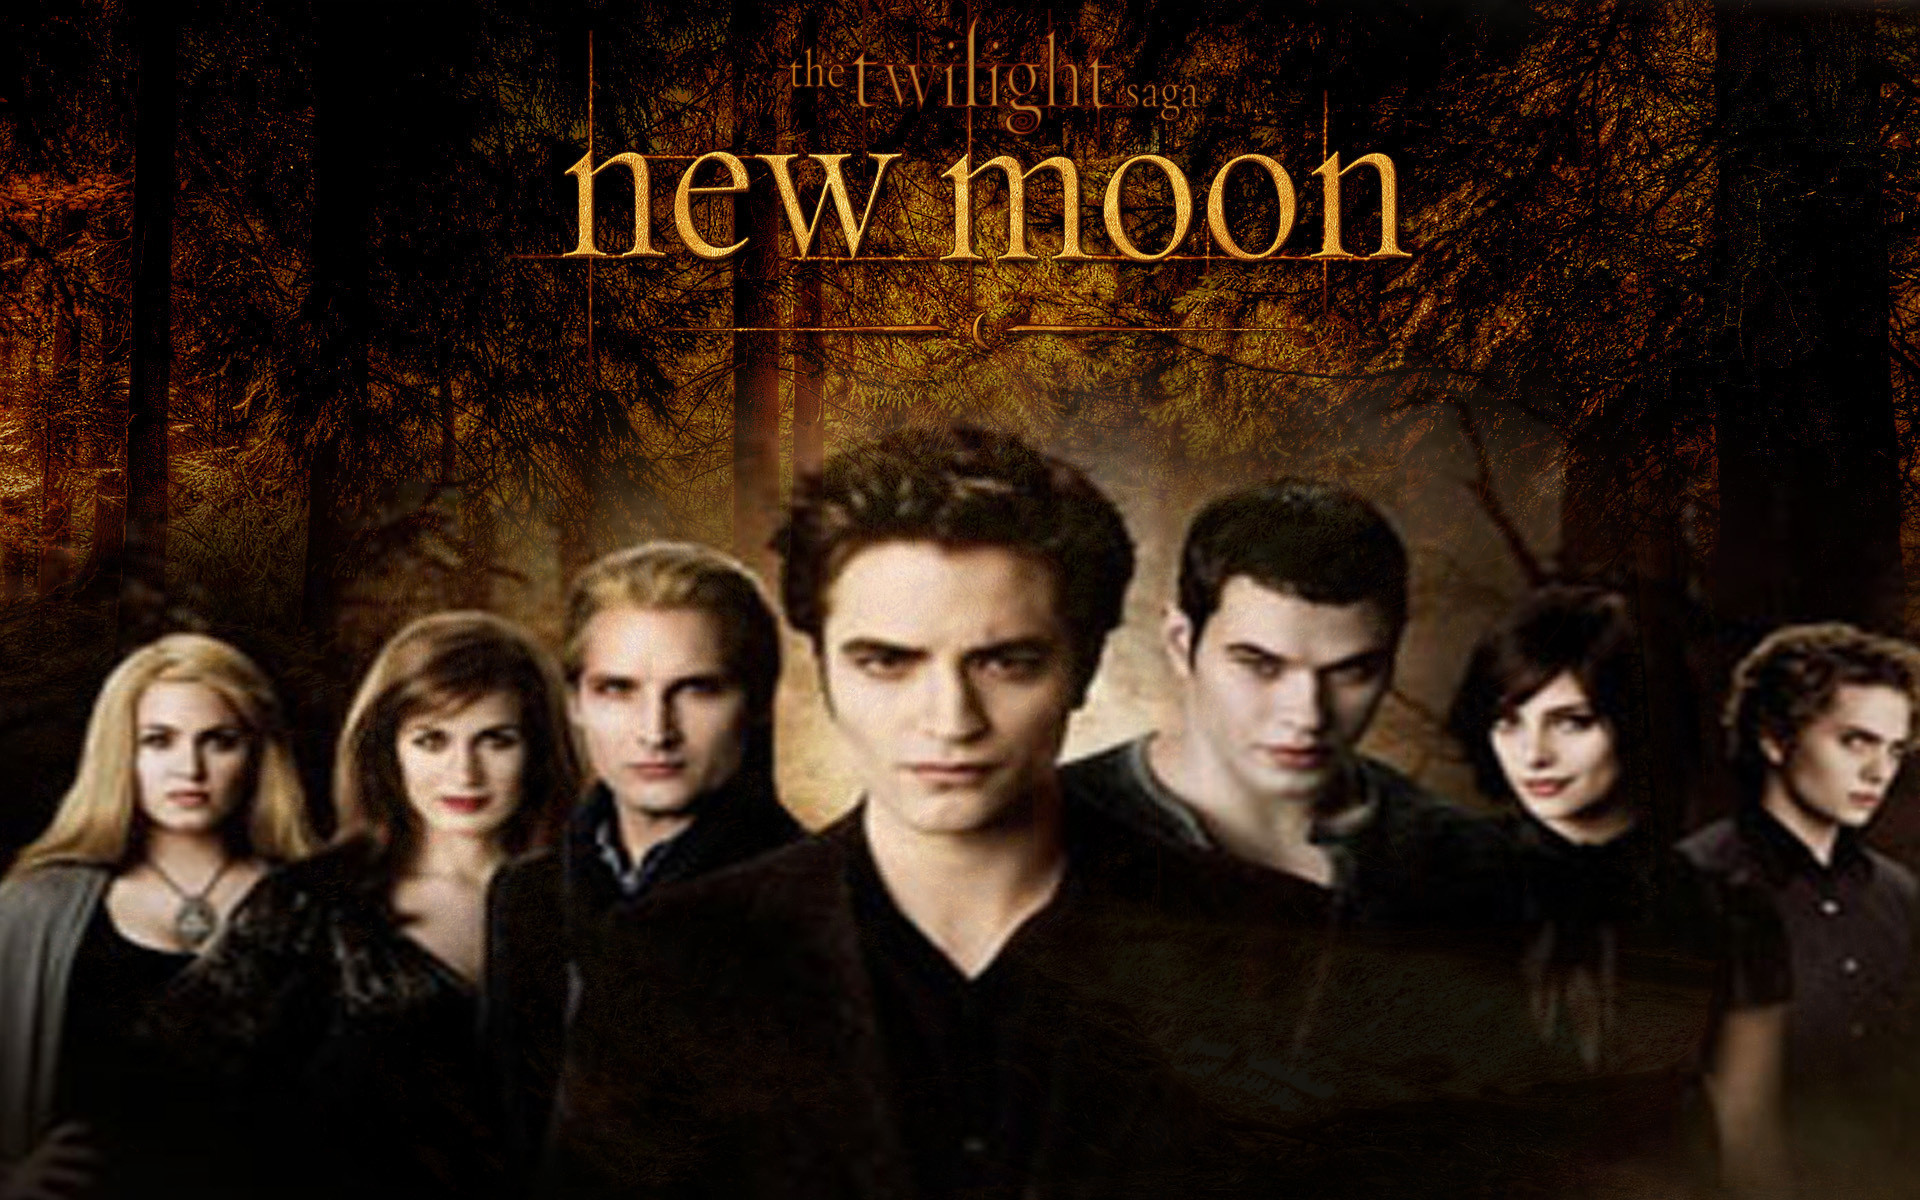 1920x1200 Image - The Cullens New Moon wallpaper.jpg | Twilight Saga Wiki | FANDOM  powered by Wikia